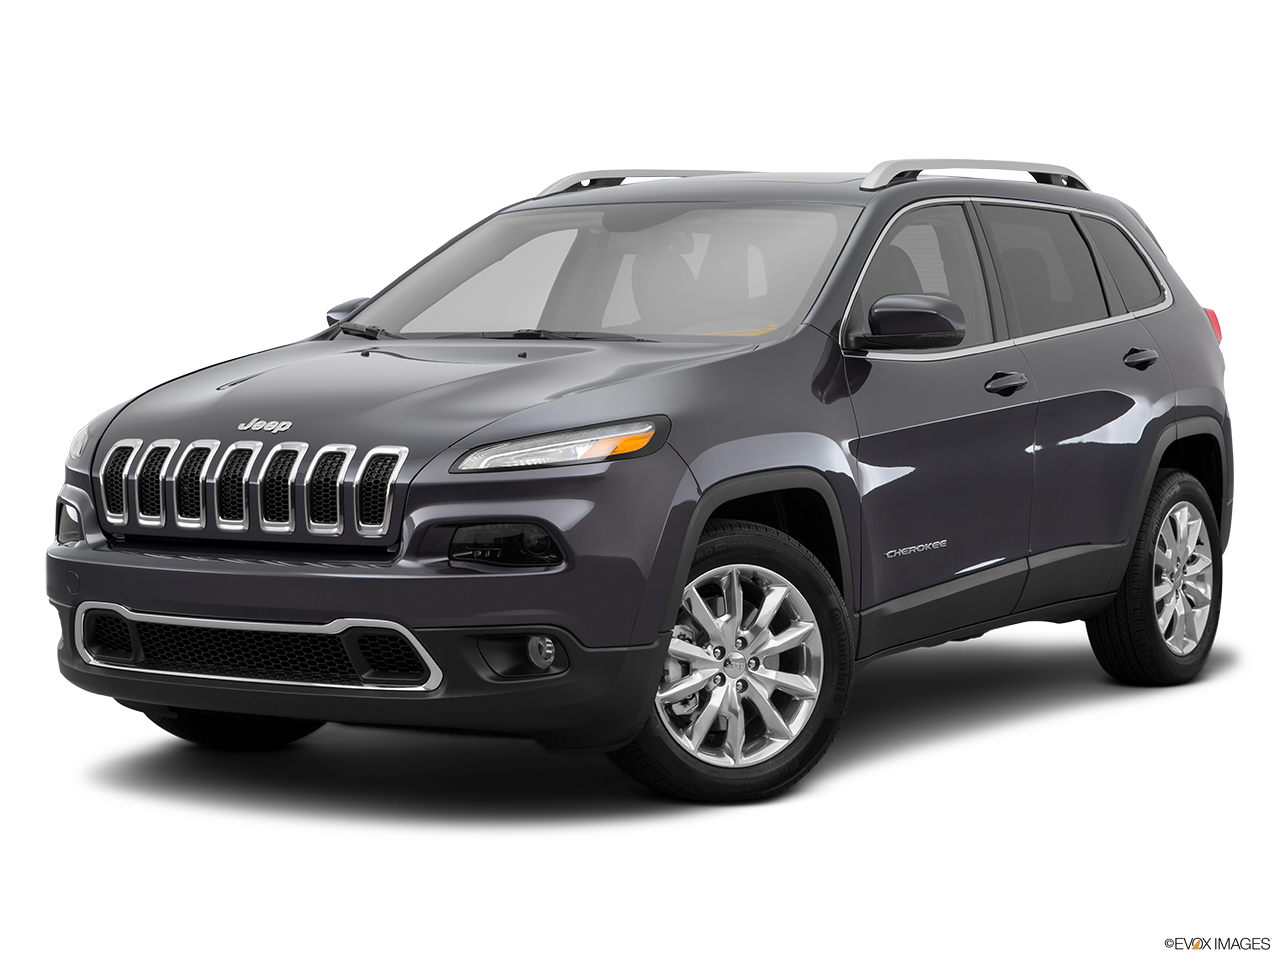 test drive a 2015 jeep cherokee at huntington beach chrysler dodge jeep ram serving costa mesa. Black Bedroom Furniture Sets. Home Design Ideas